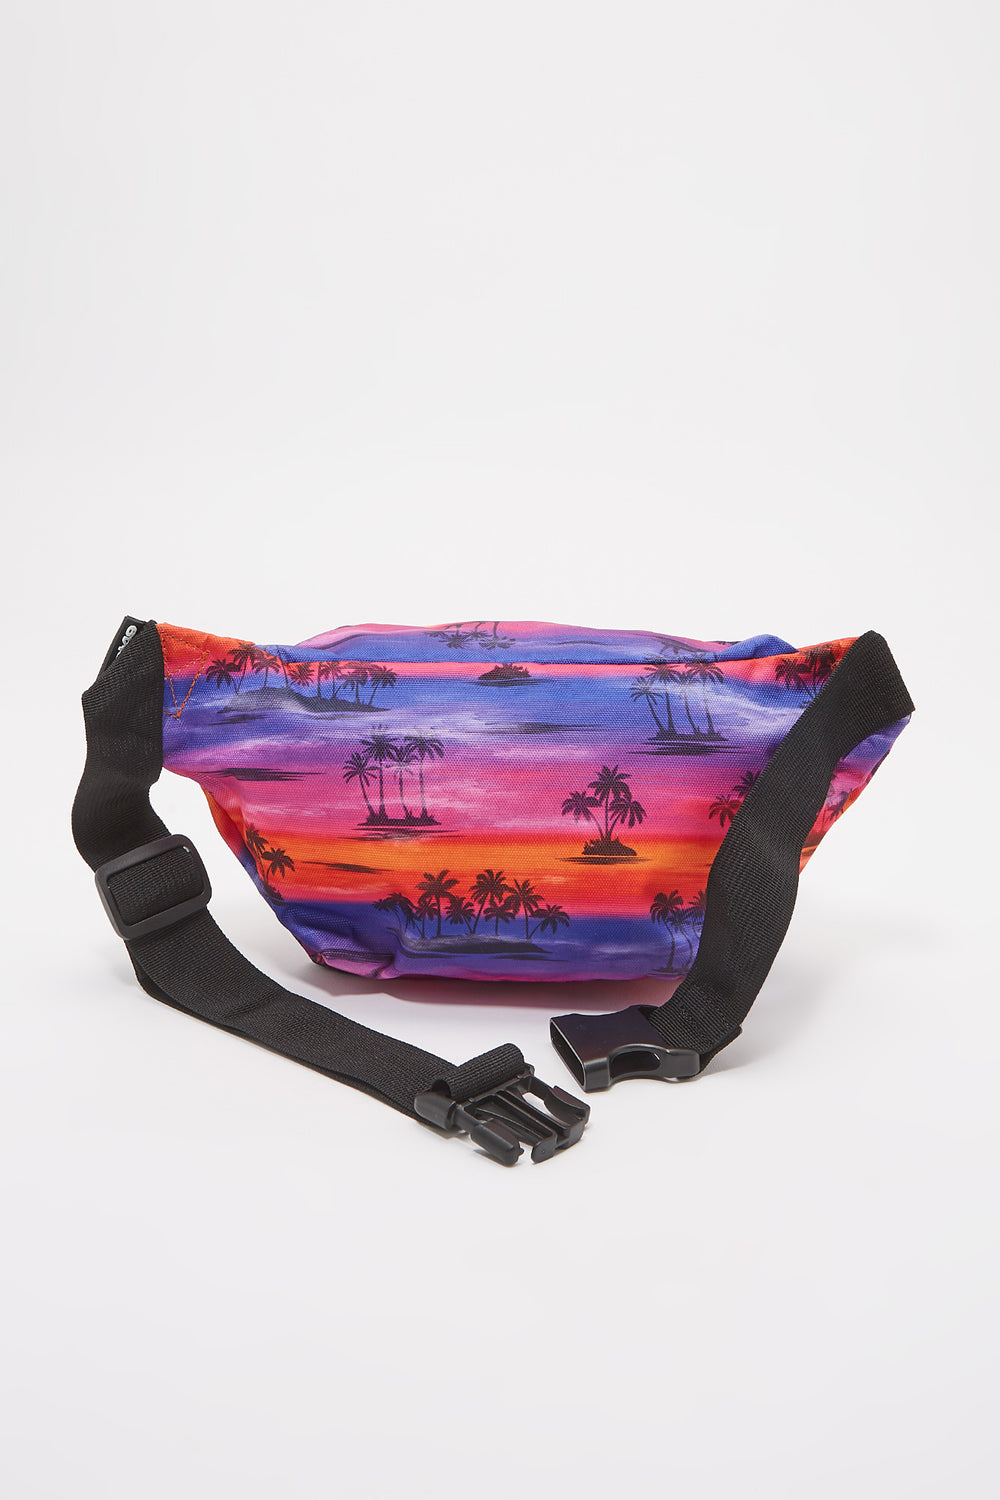 Sac Banane Sunset West49 Multi